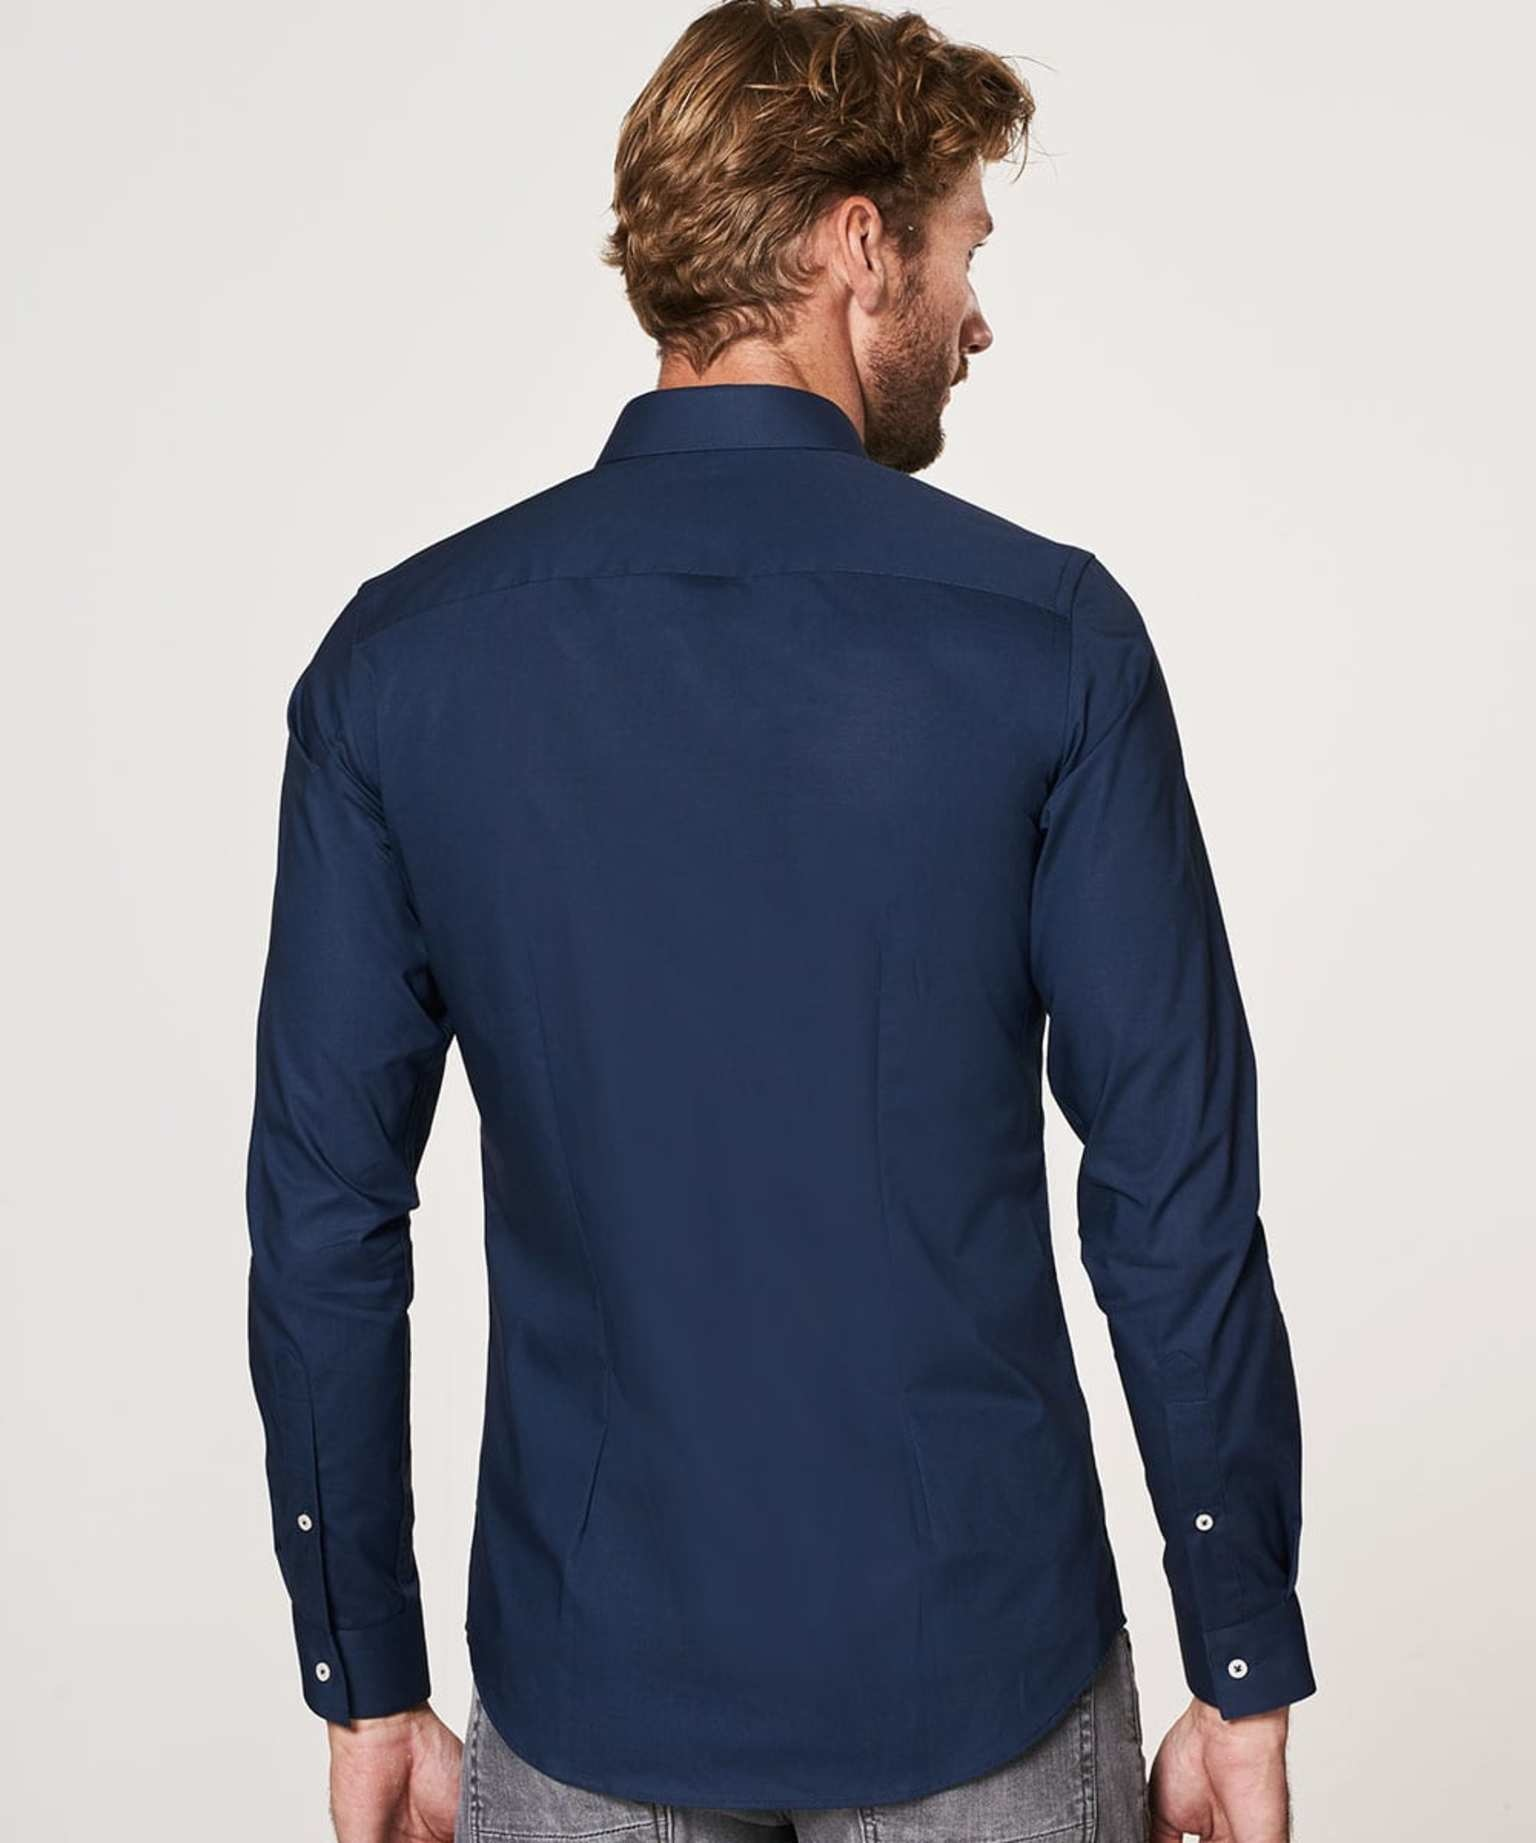 Profouomo Overhemd Super Slim Fit Stretch Navy (PP0H0A103)N